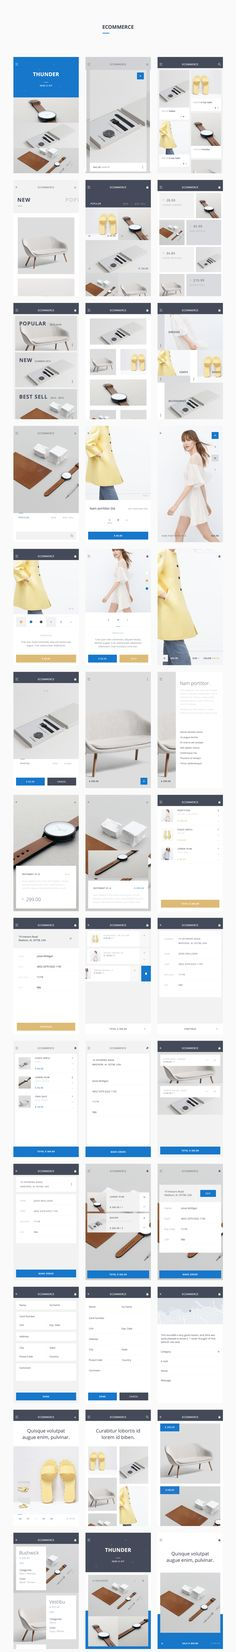 uikit shop Thunder UI Kit - Love a good success story? Learn how I went from zero to 1 million in sales in 5 months with an e-commerce store. Mobile Web Design, Web Ui Design, Ecommerce App, Ui Web, Responsive Web, Mobile App Ui, Apps, Application Design, Interface Design